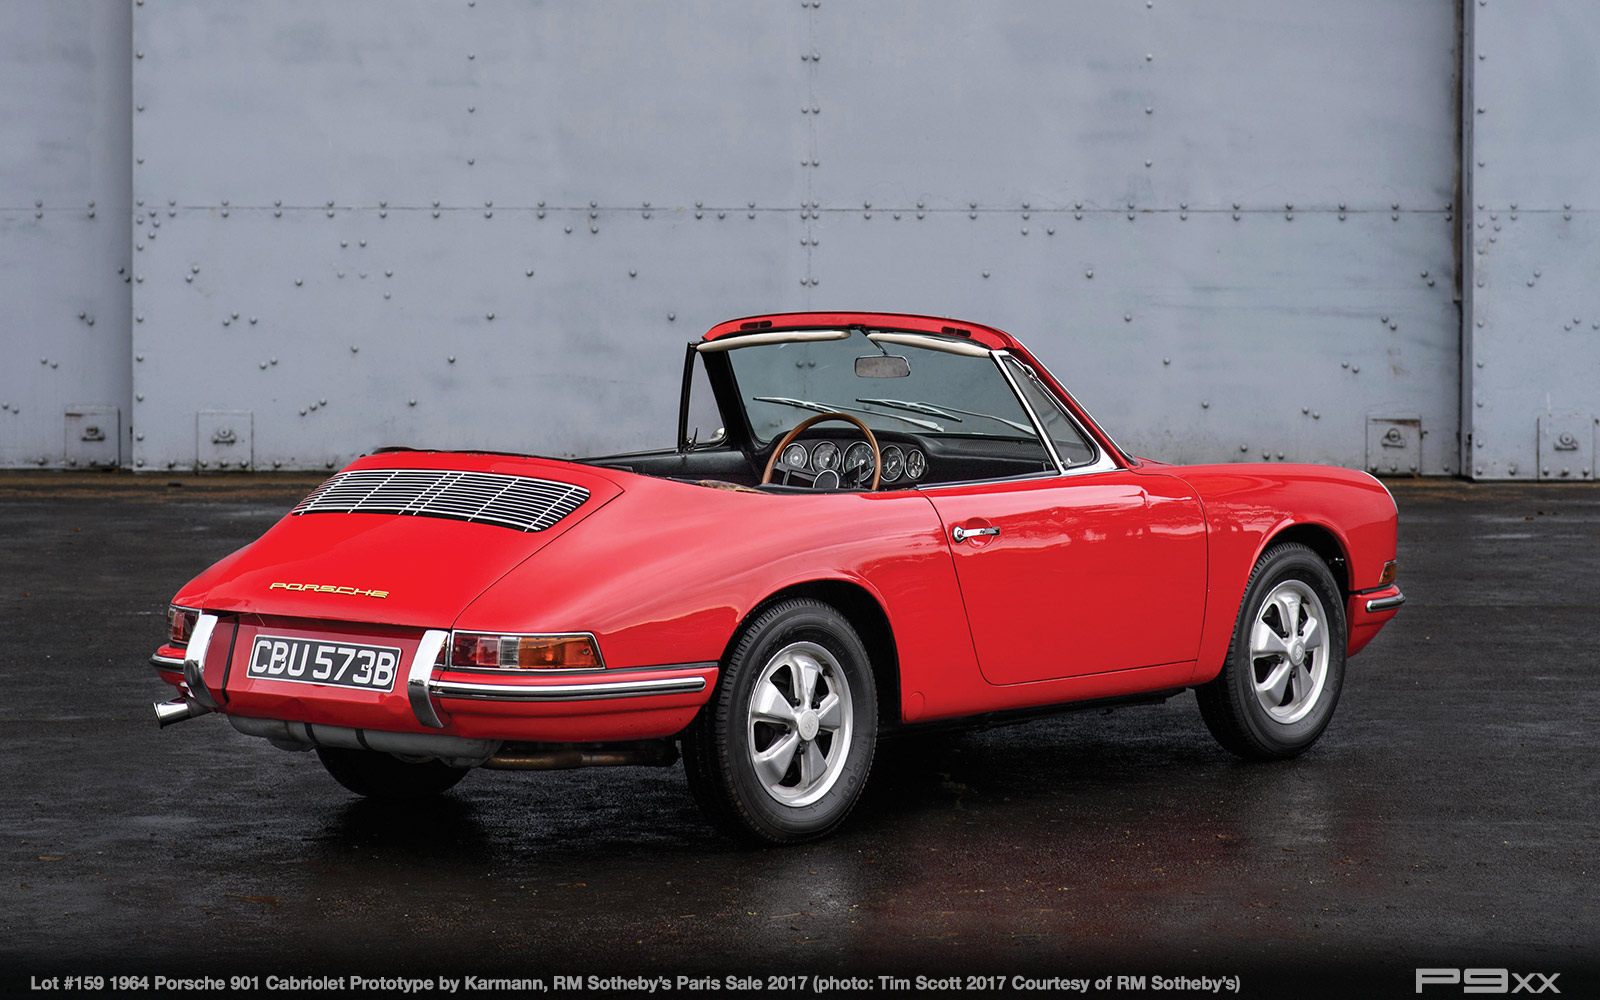 Karmann porsche 901 cabriolet prototype headed for parisian sale the prototype was put into storage then sold to a collector in 1967 it later found its way to myron vernis another collector known for his affinity for vanachro Gallery